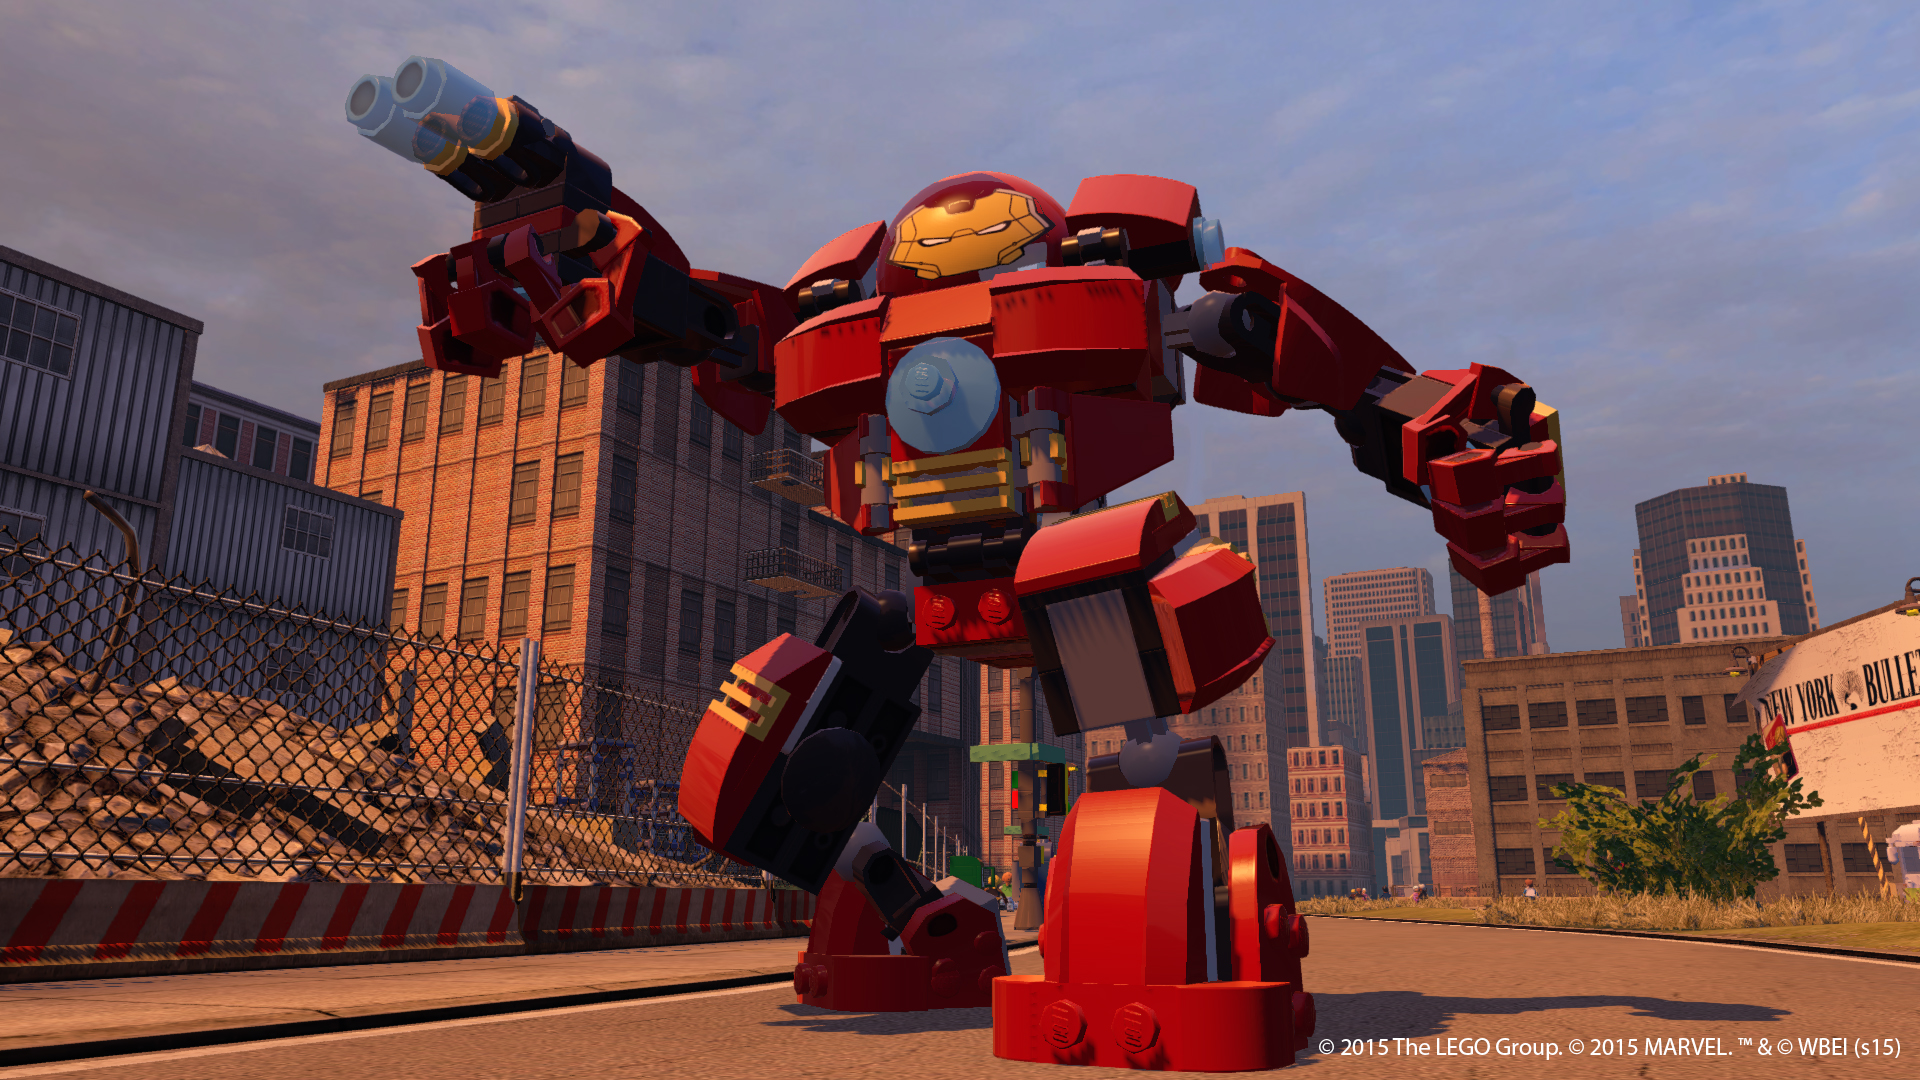 3rd-strike.com | LEGO Marvel's Avengers – Review Lego Iron Man 3 Suits